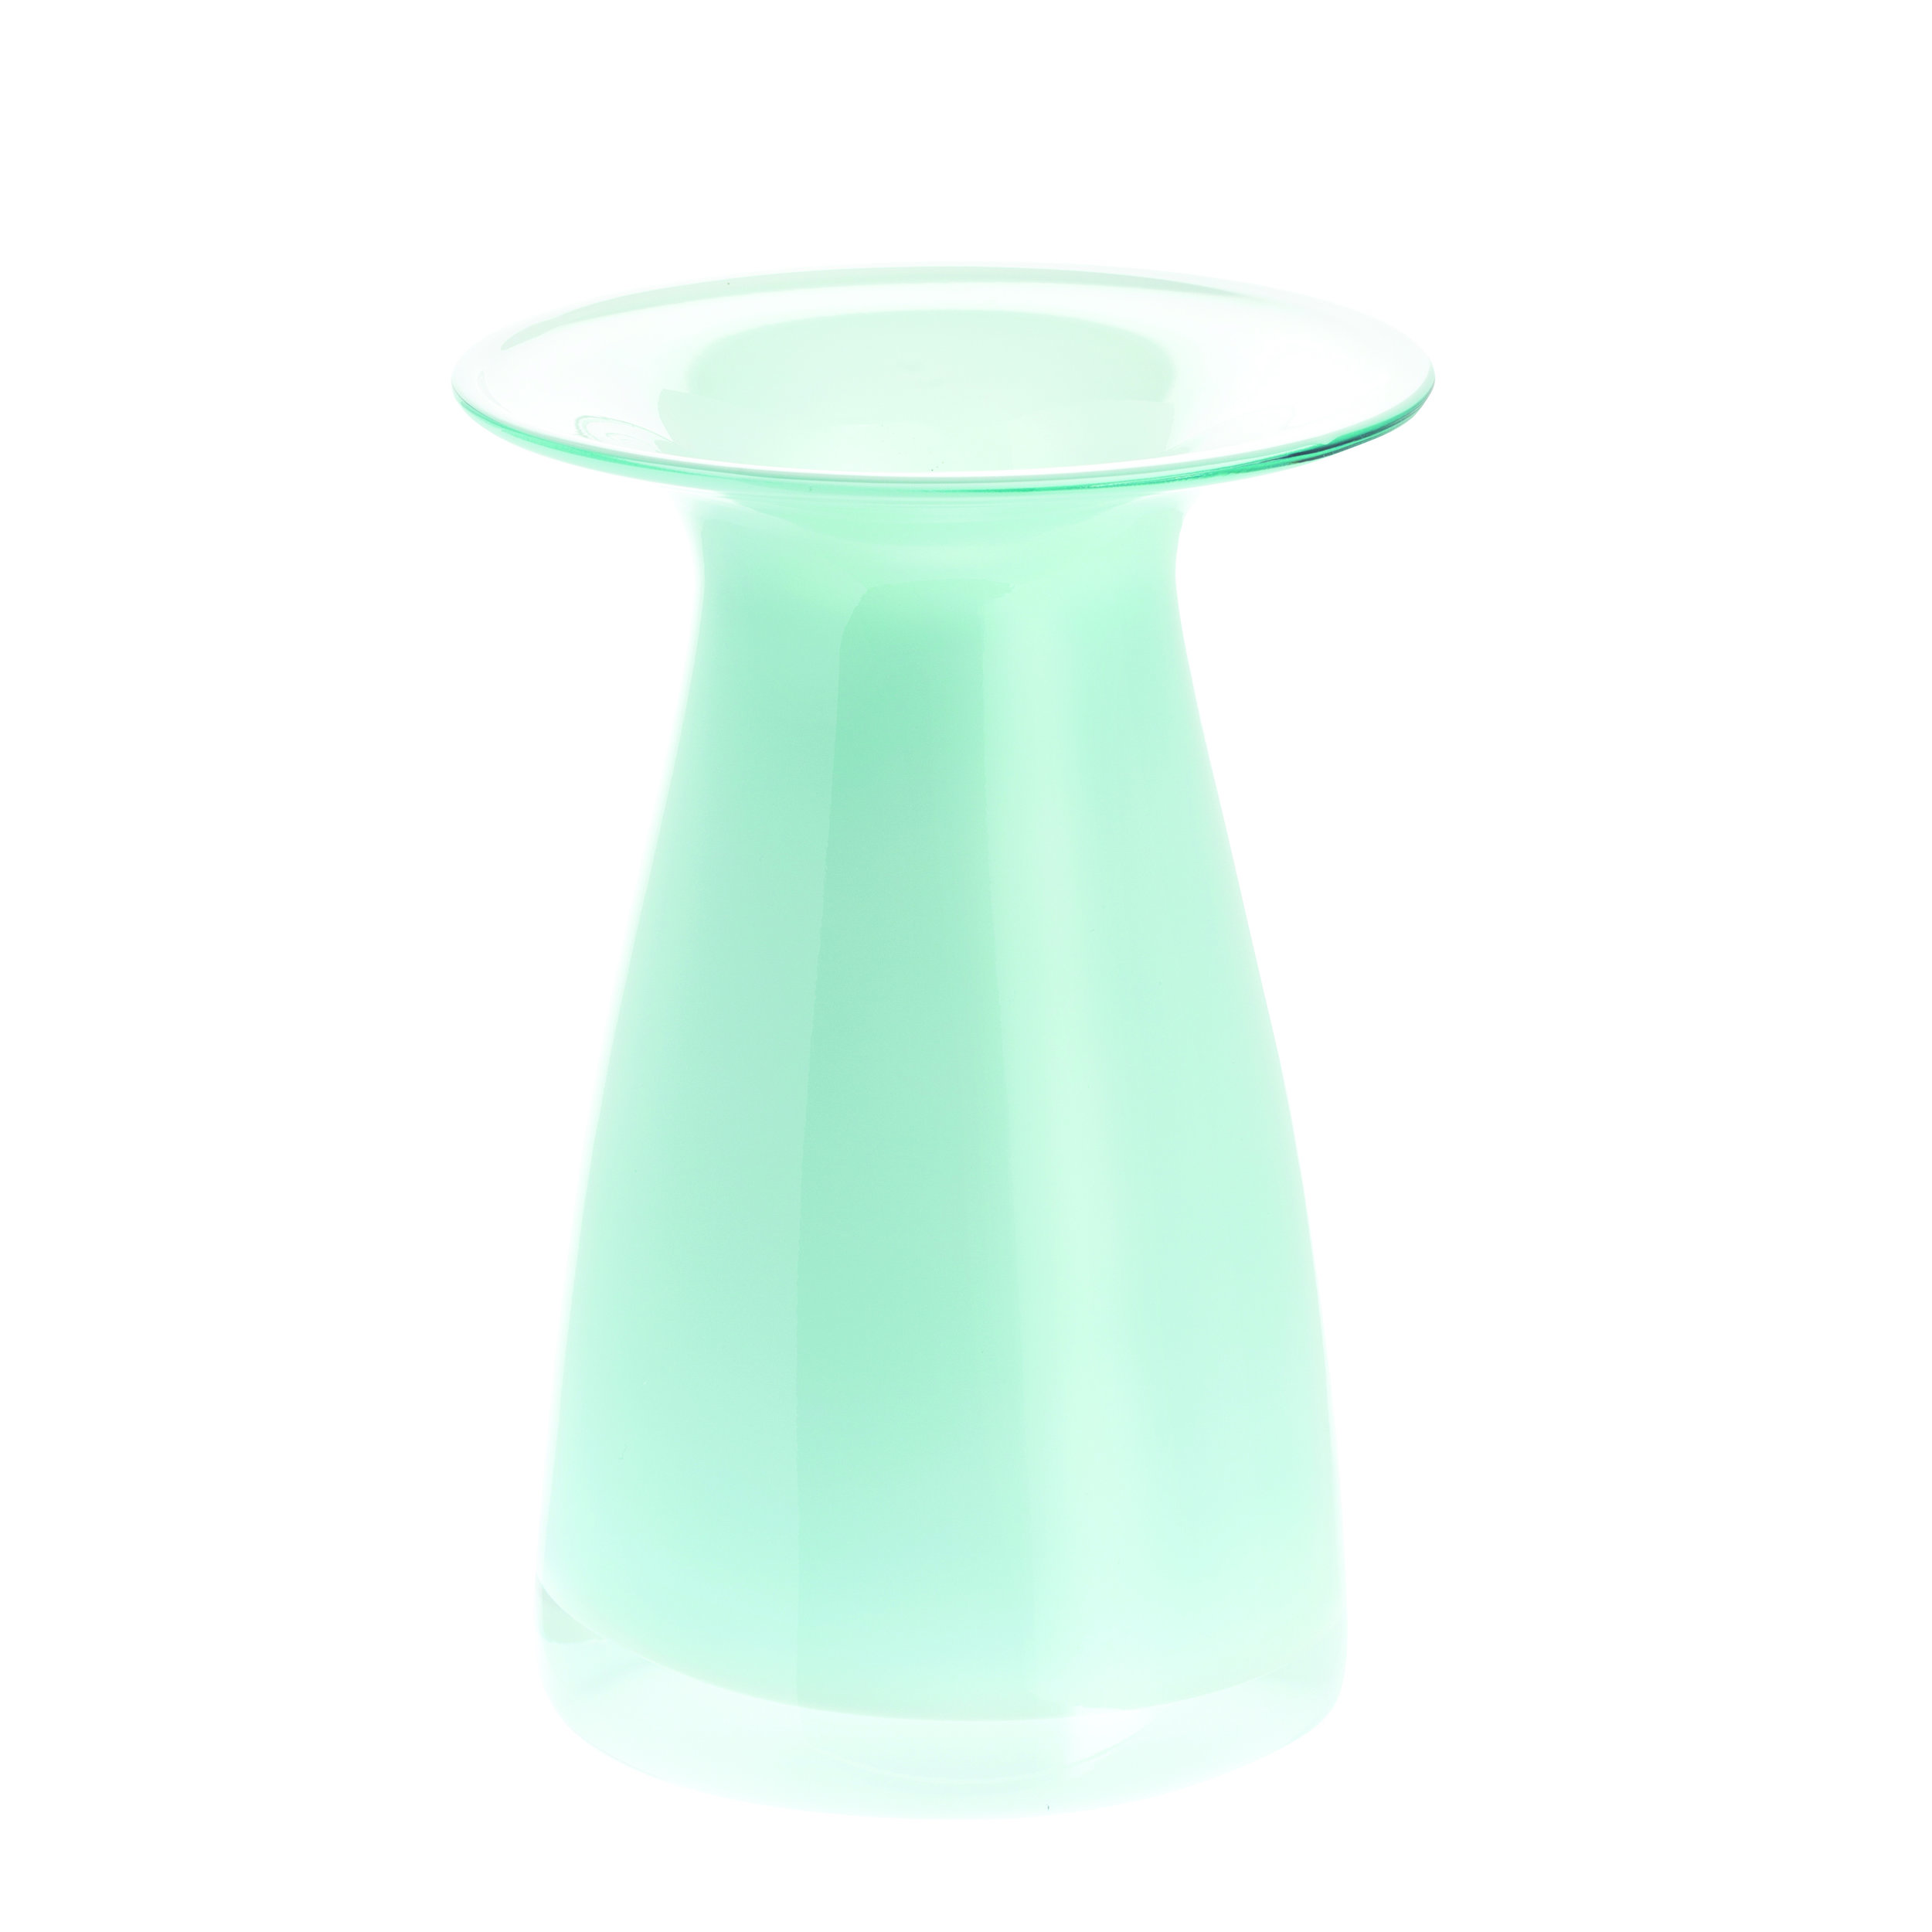 Dartington Crystal_Juno_Mint Green Medium Vase_£30.00_www.dartington.co.uk.jpg